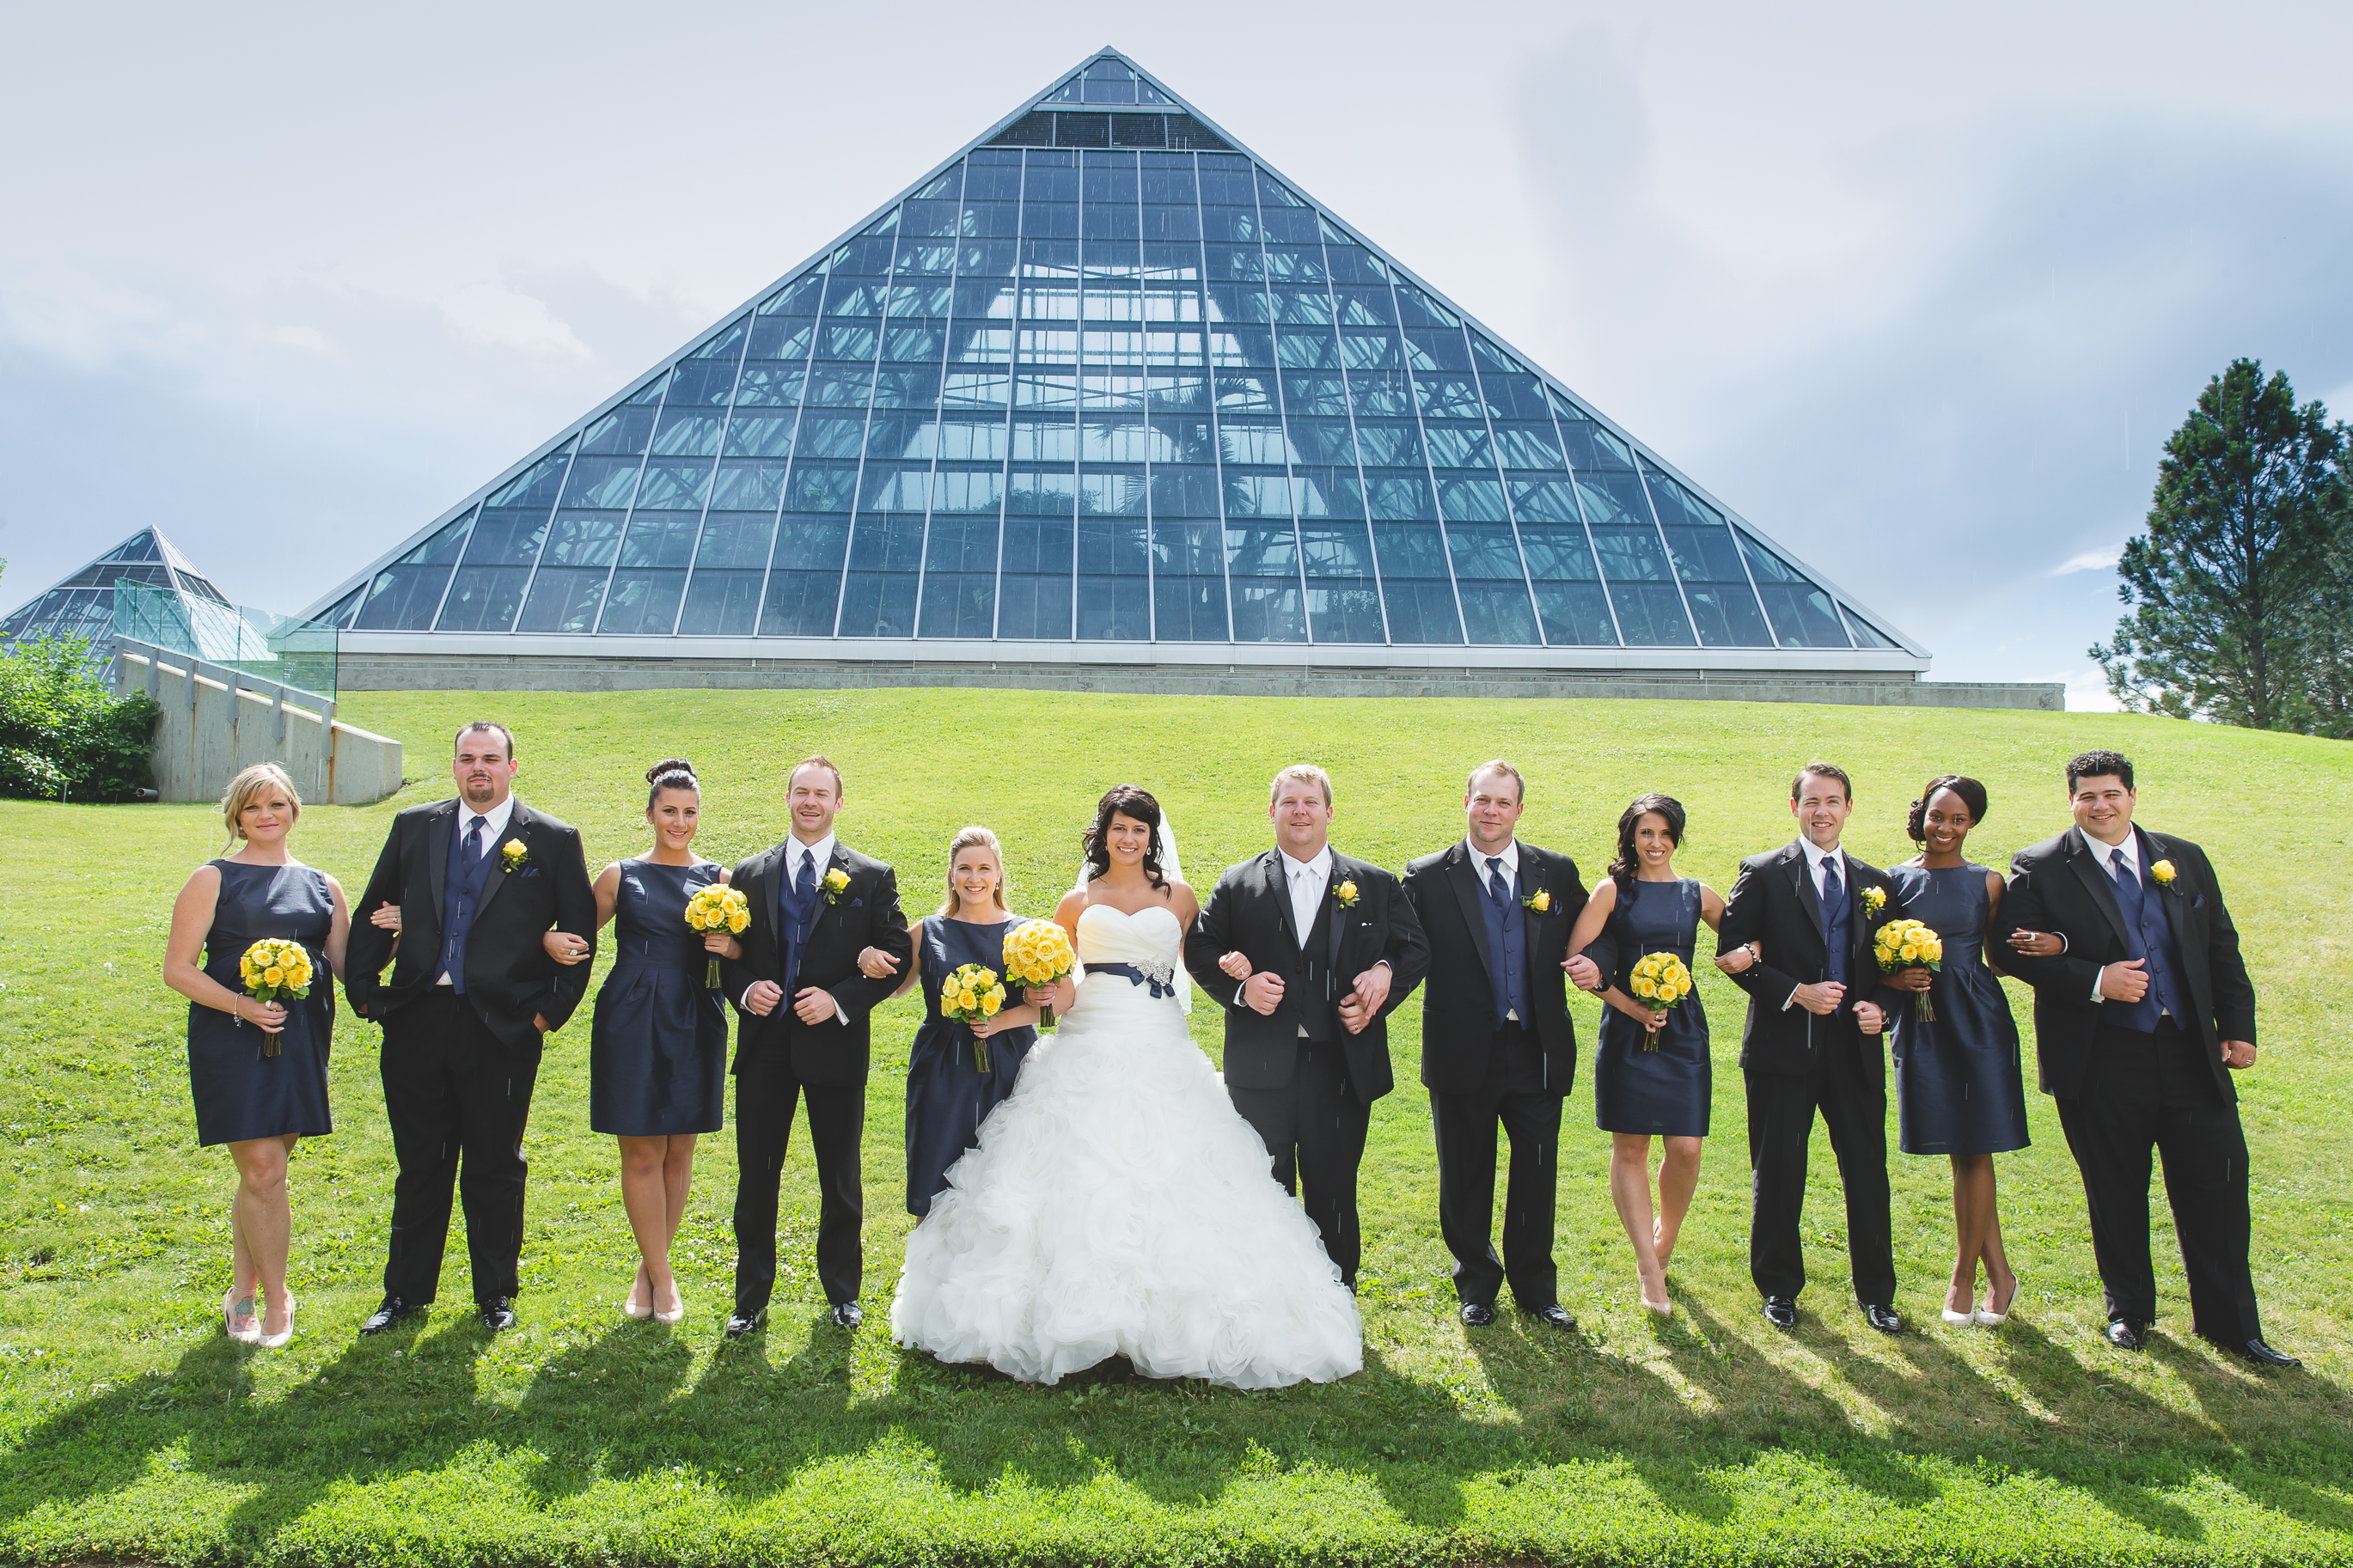 Bridal Party Photographs at the Muttart Conservatory